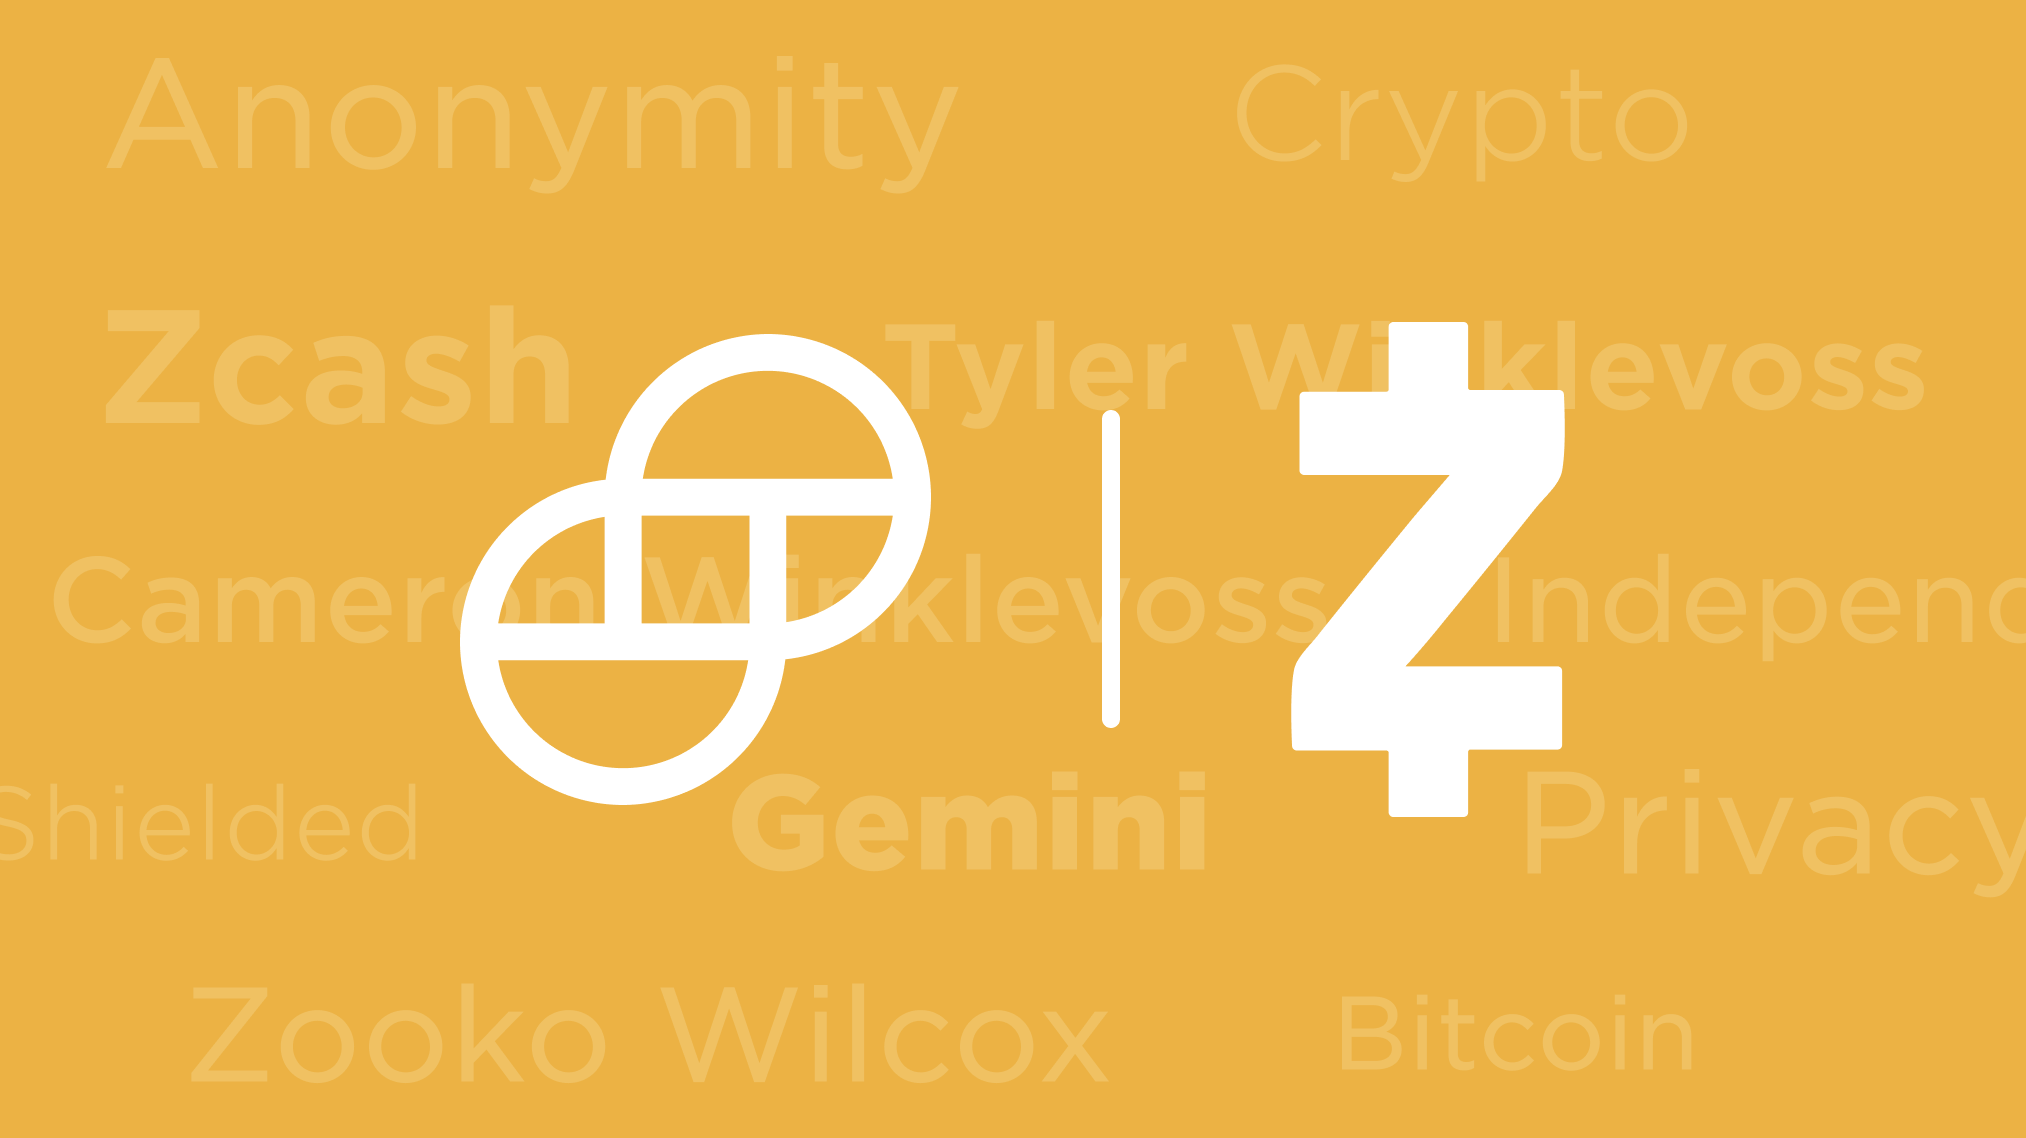 A Conversation on Zcash With Cameron and Tyler Winklevoss, and Zooko Wilcox